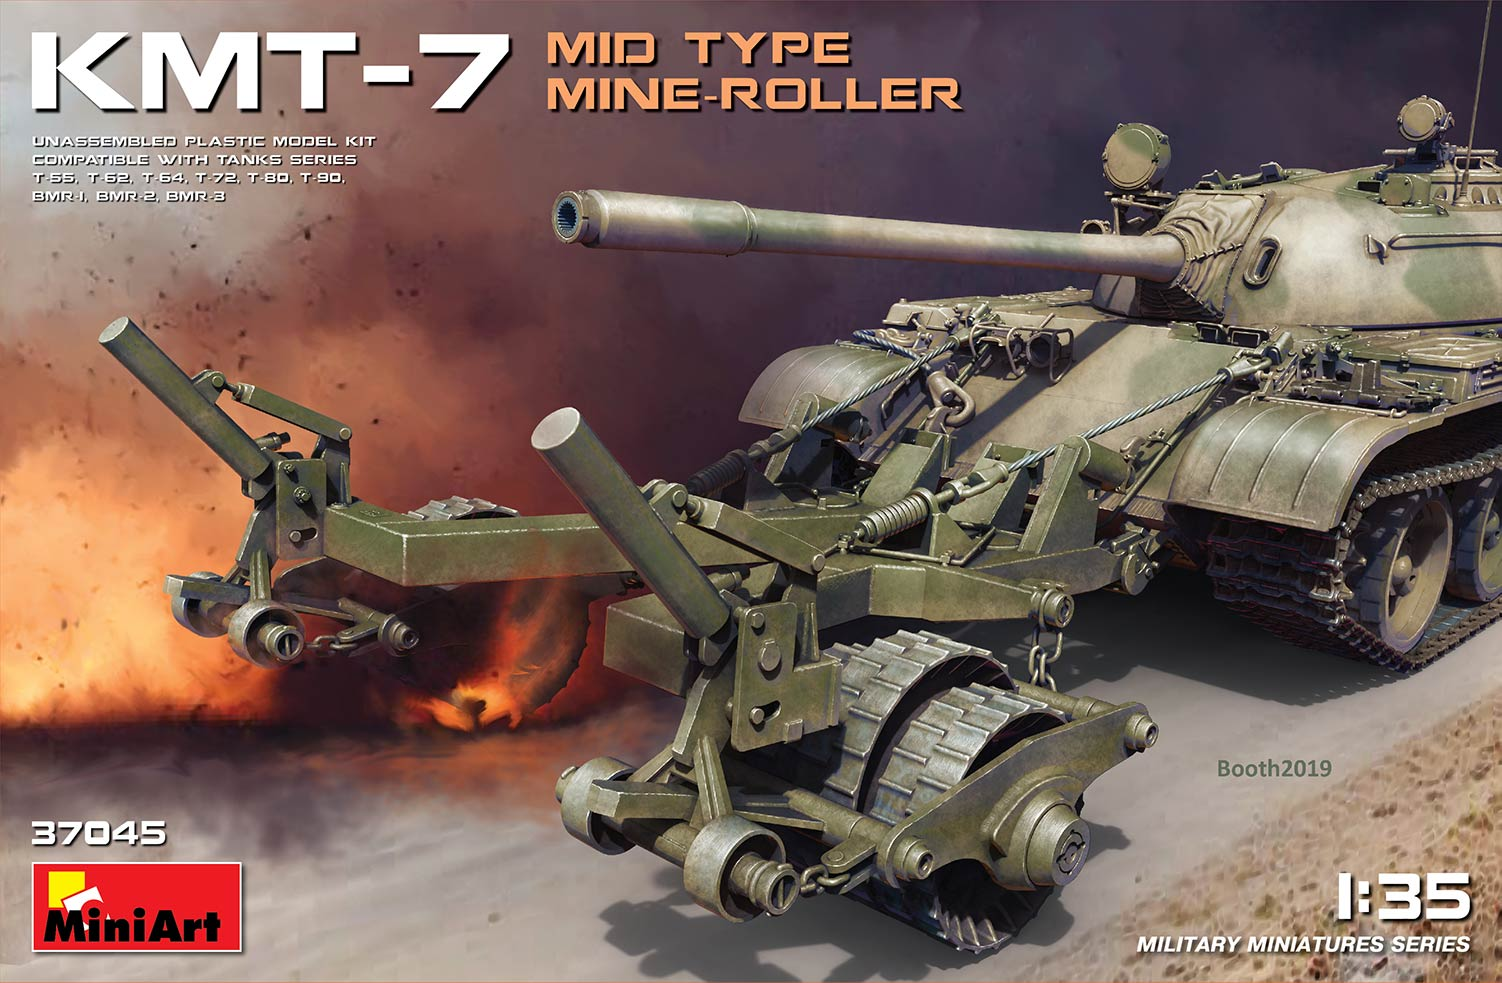 MiniArt KMT-7 Mid Type Mine-Roller